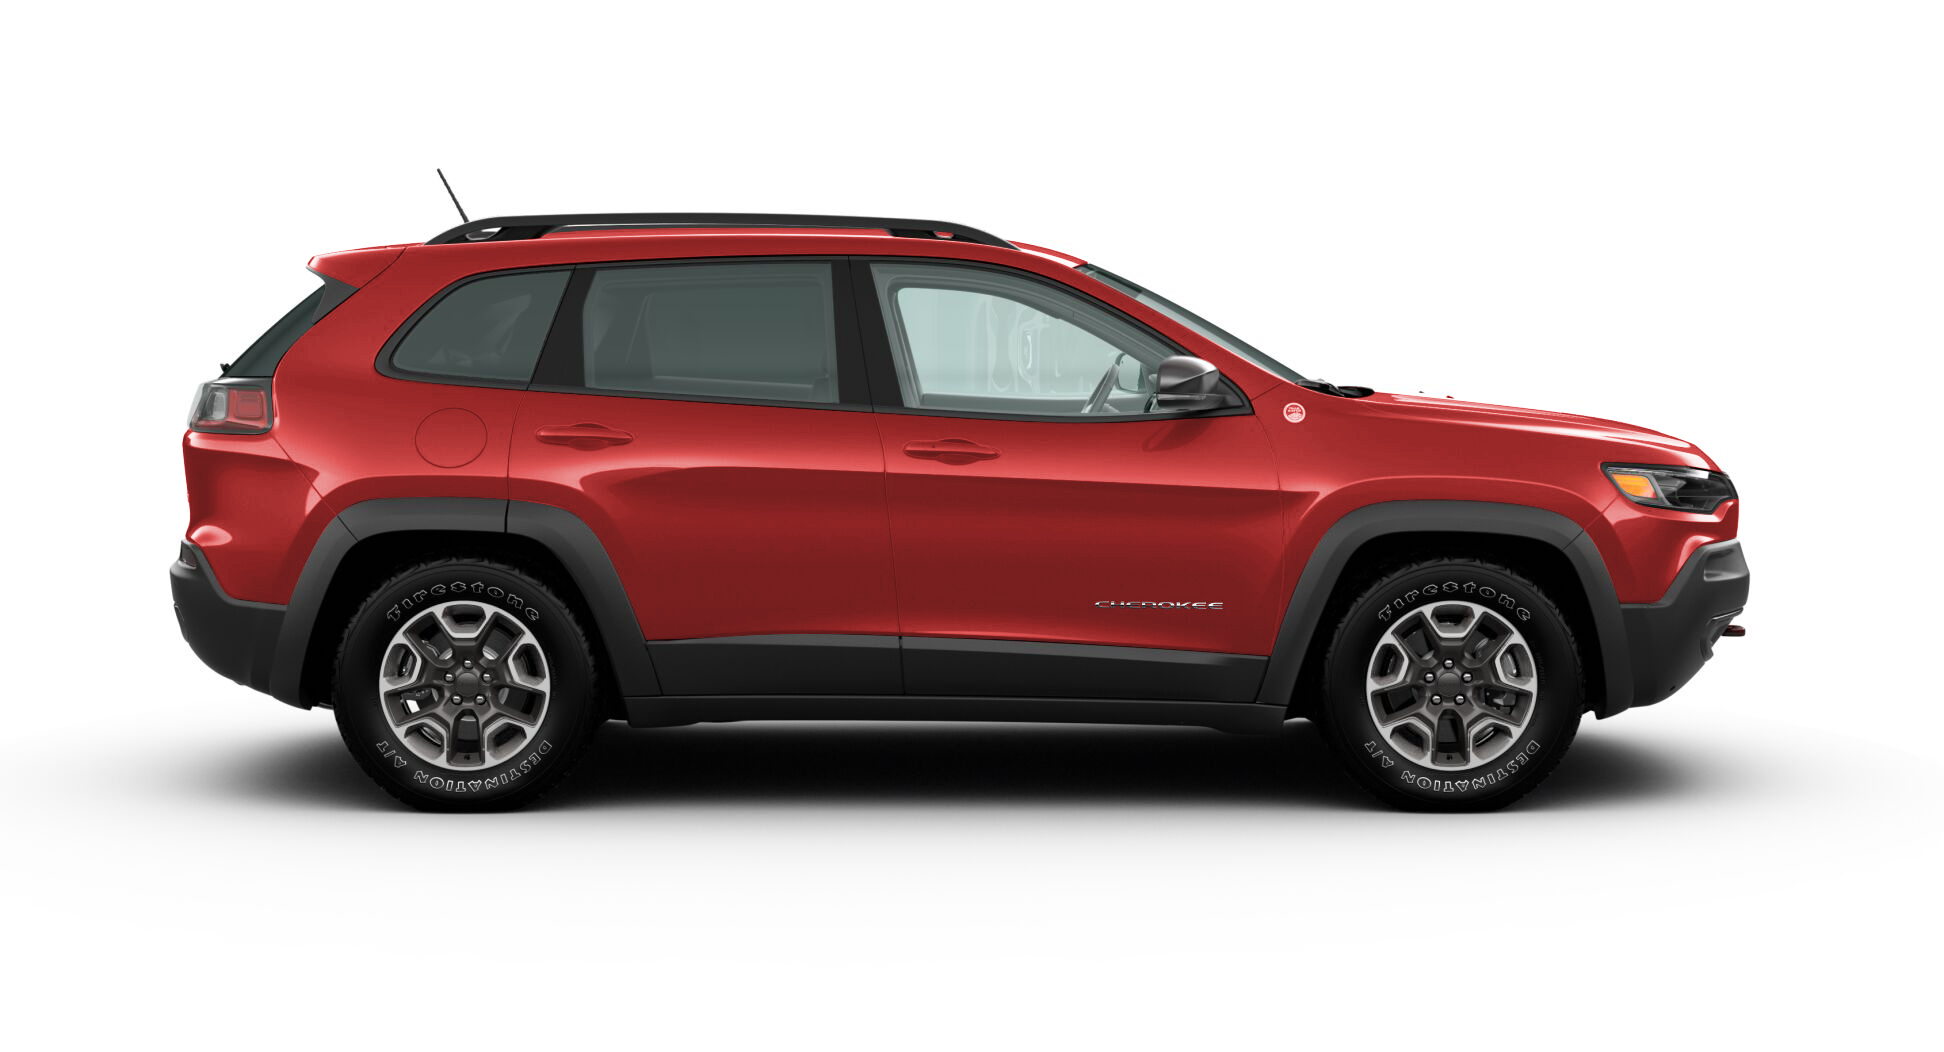 Jeep CHEROKEE TRAILHAWK  4X4 3.2L AT FIRECRACKER RED Exterior 2